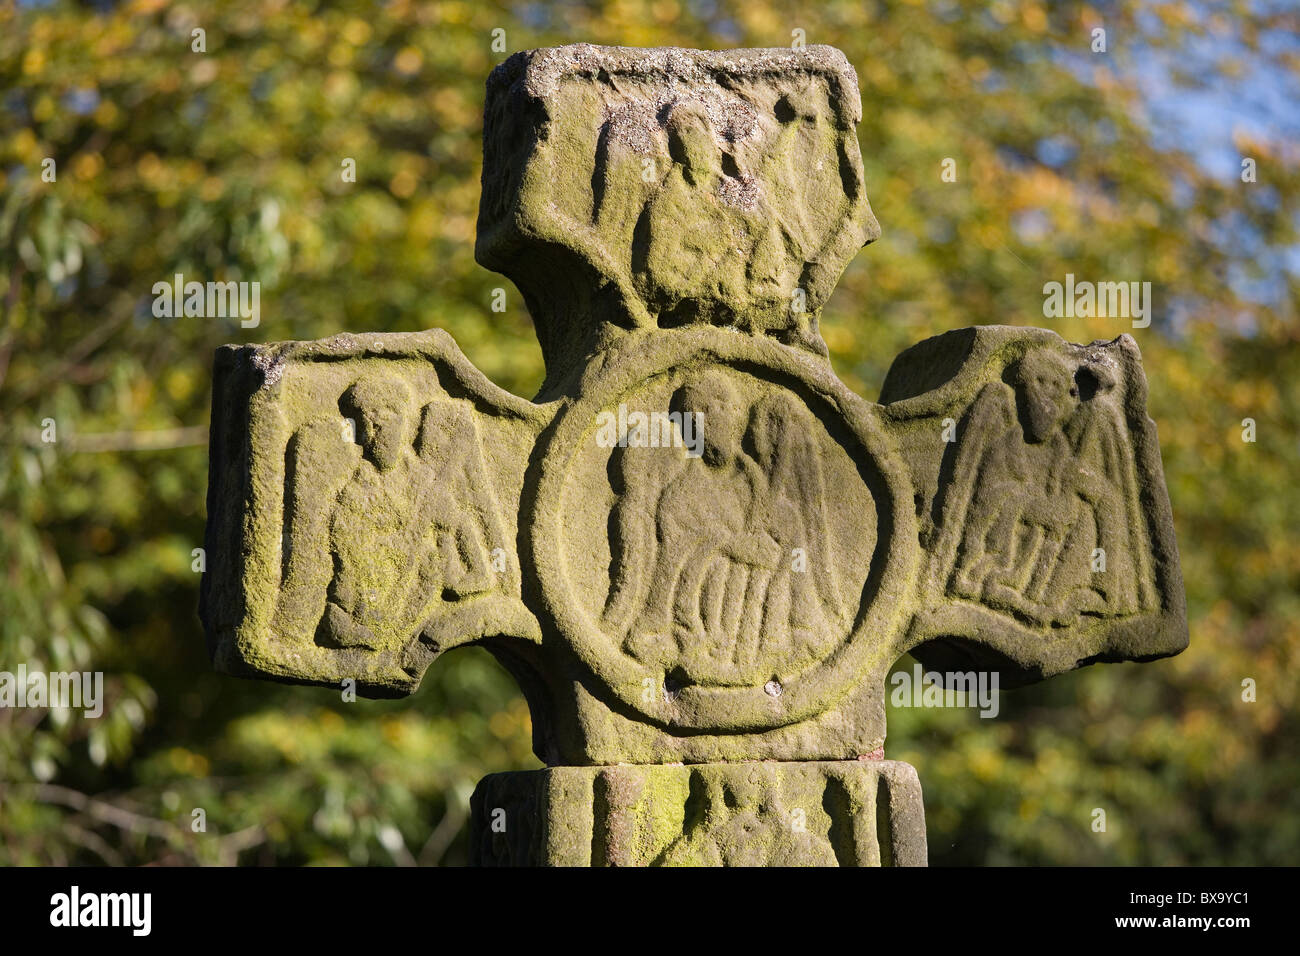 Celtic cross in Eyam churchyard, Eyam 'Plague Village', Derbyshire, England, UK - Stock Image